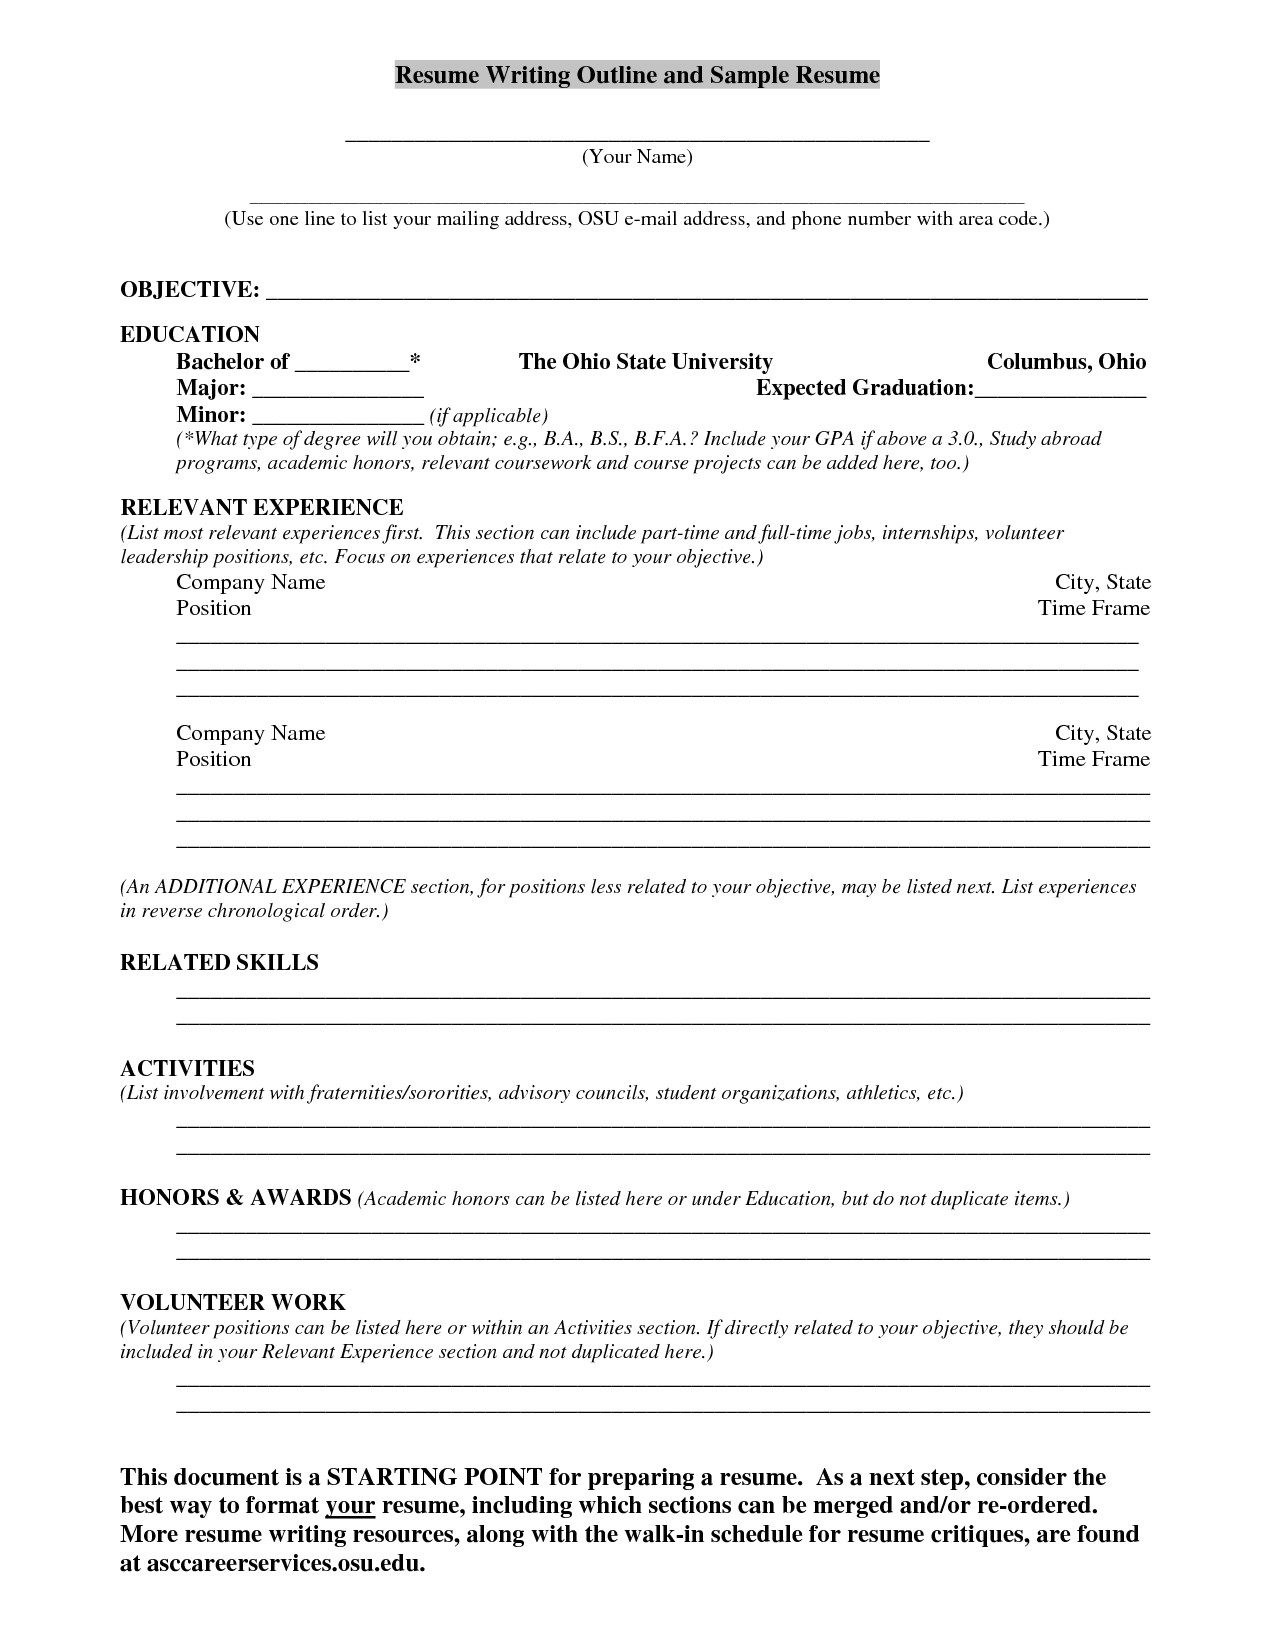 Additional coursework on resume focusing